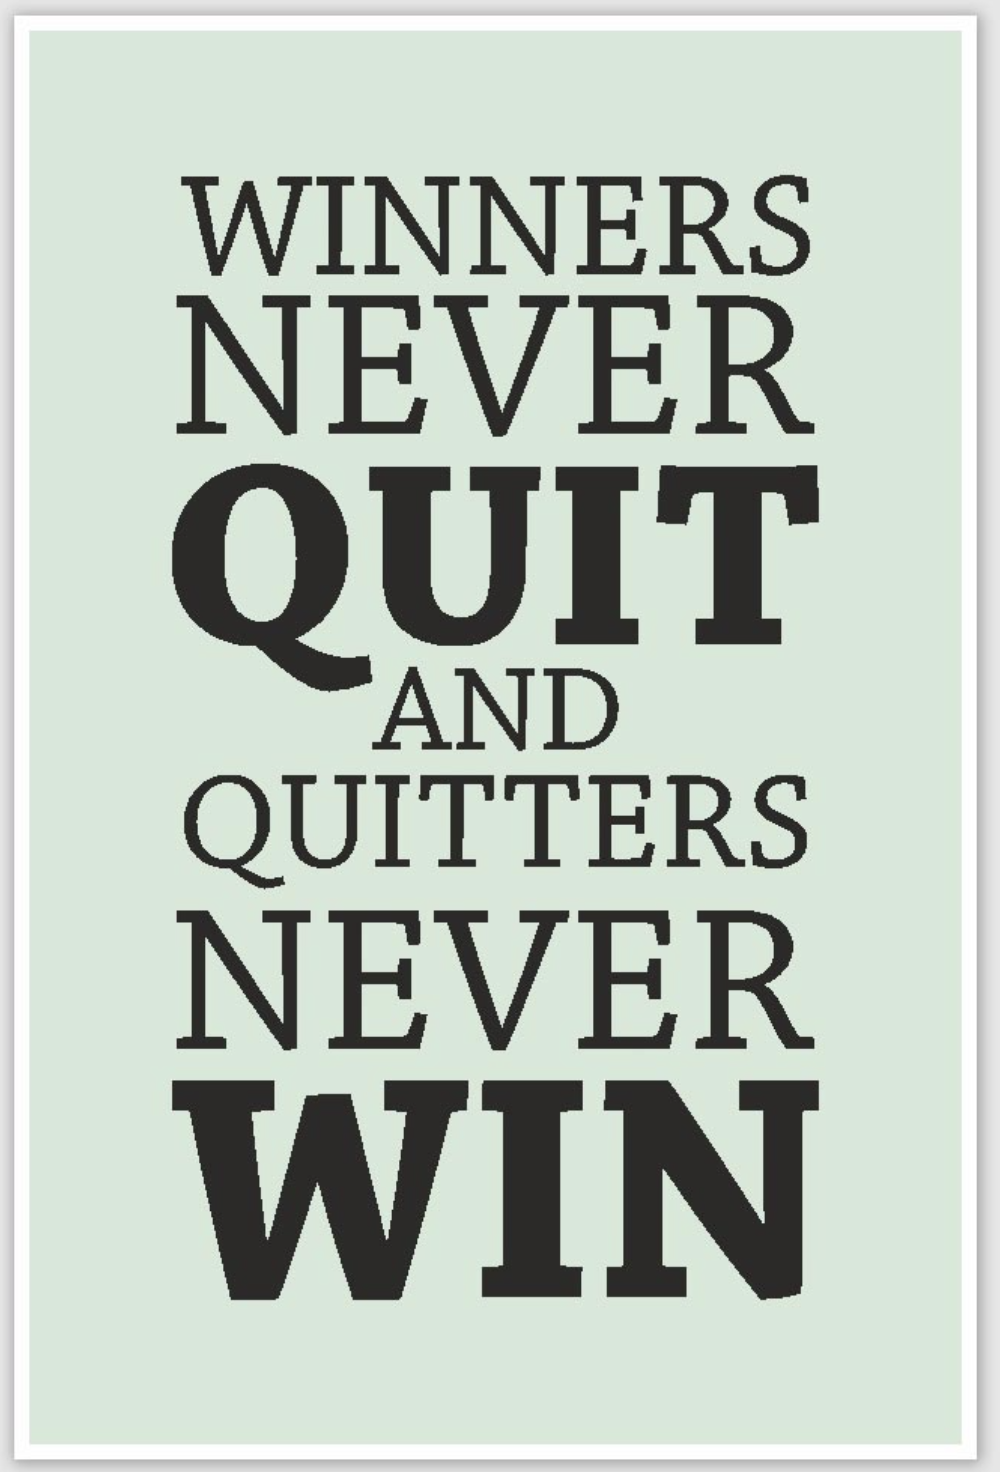 [Image] Winners never quit and Quitters never win.